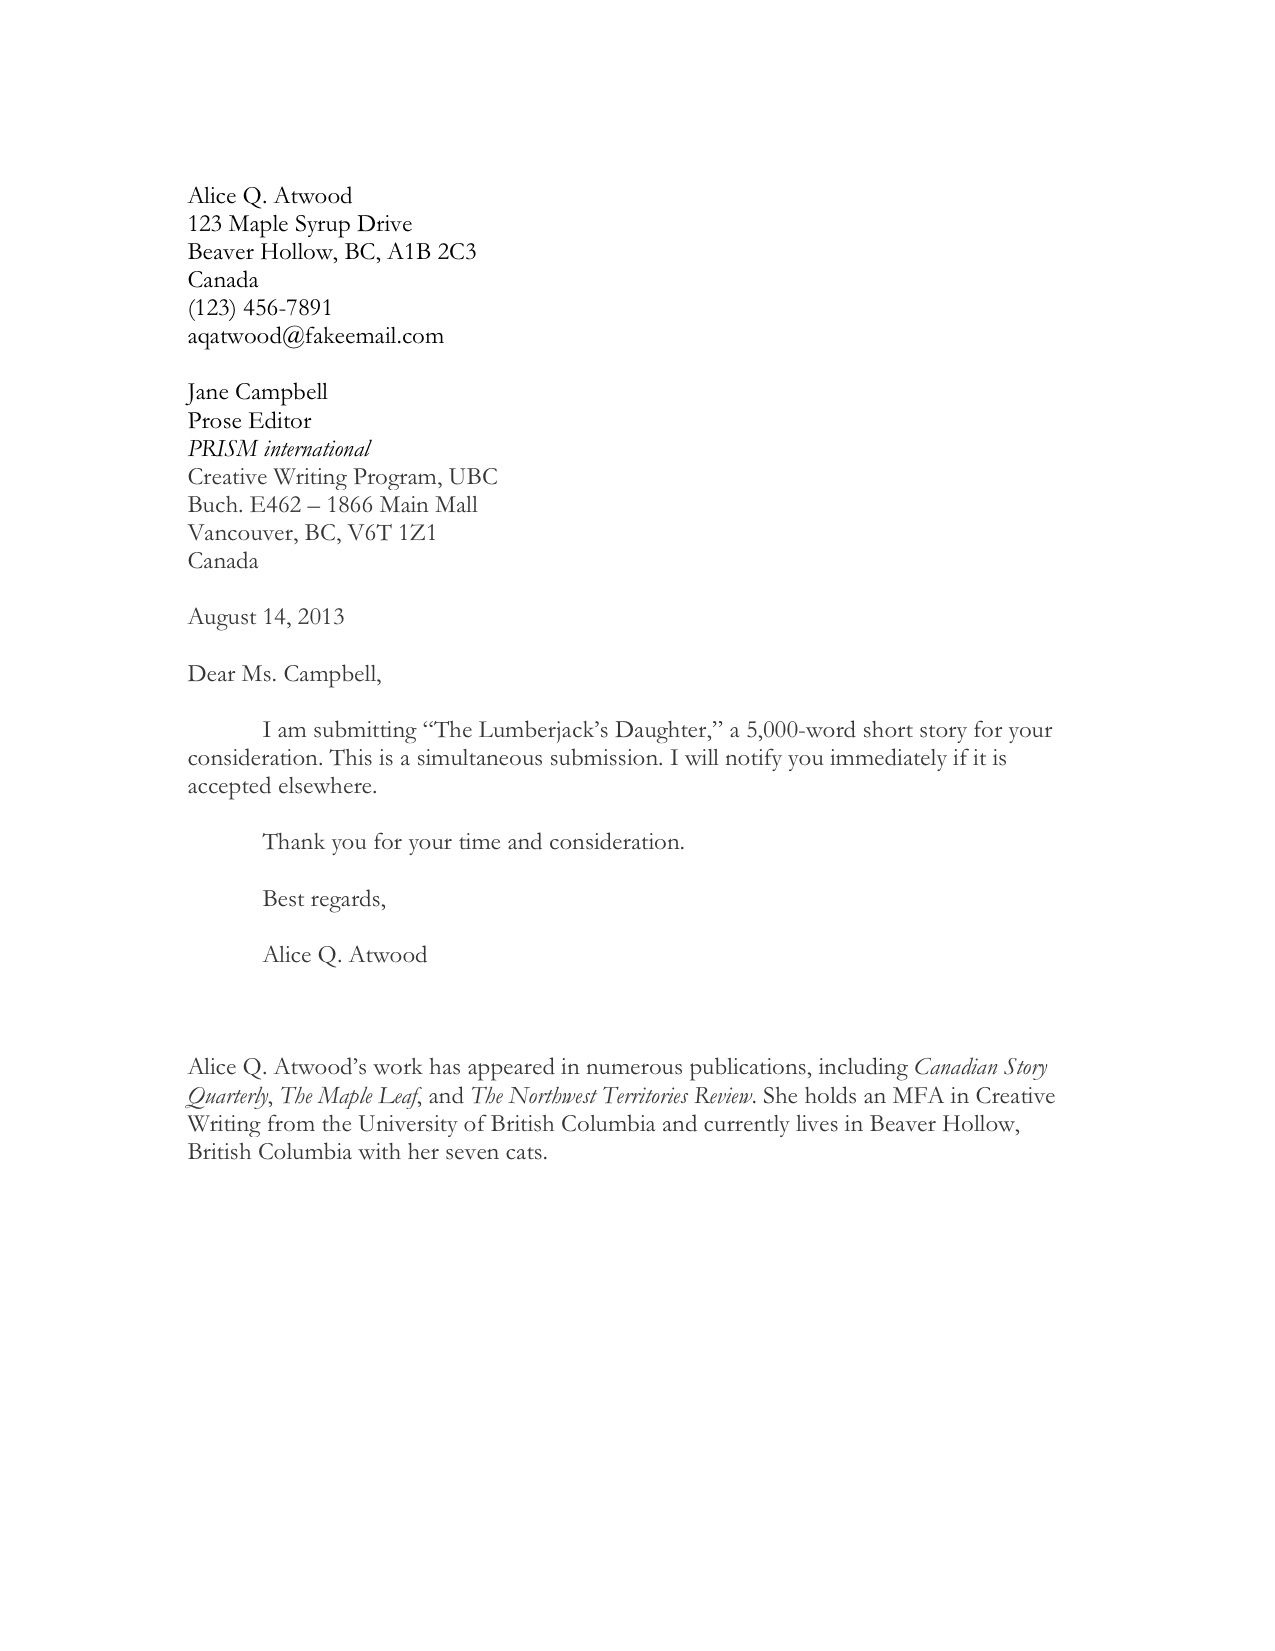 Cover Letter Example  Short Cover Letter Sample